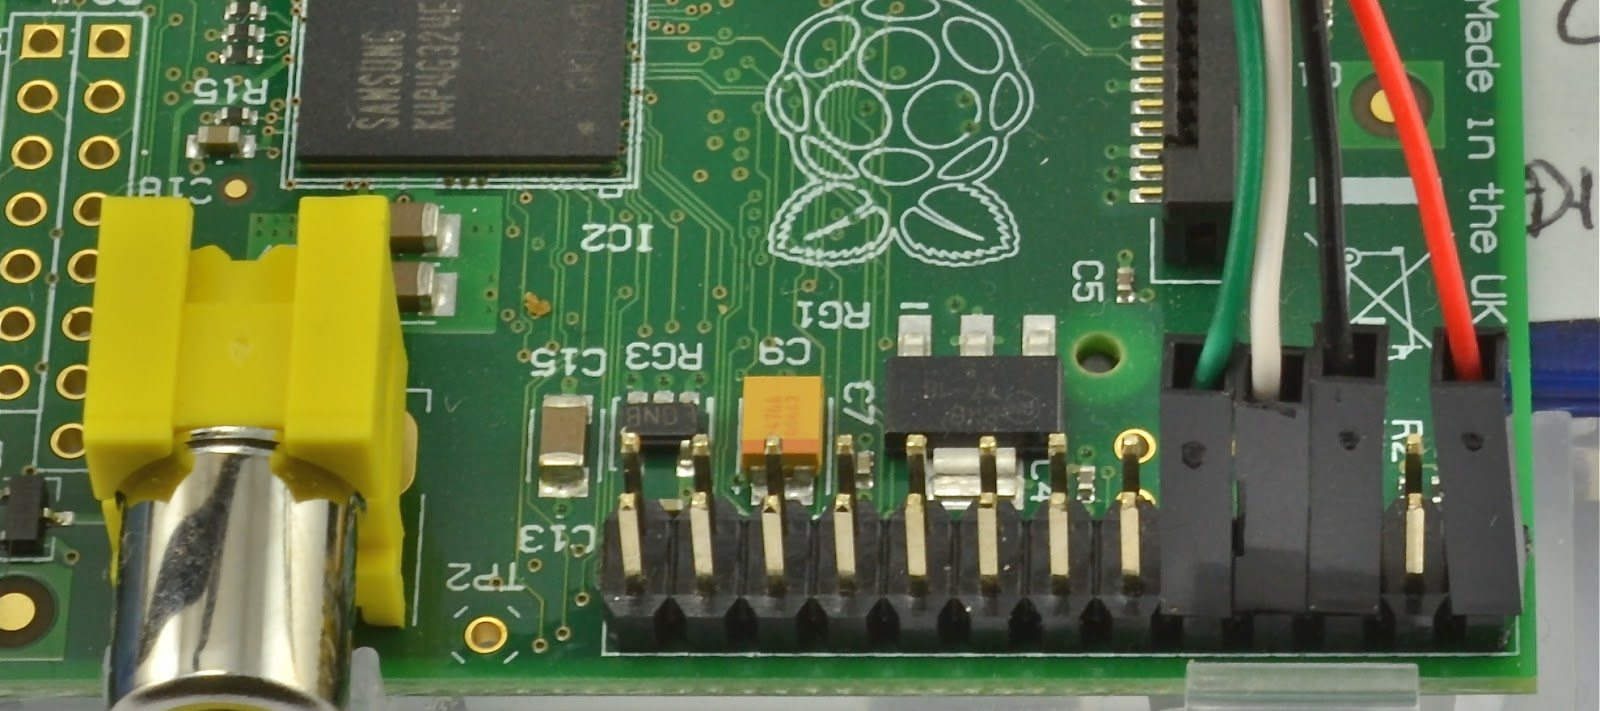 Raspberry Pi Developers Guide Gpio Wiringpi Serial Now Plug In The Usb Lead Power Adaptor Is Removed And You Will See Pis Led Should Light